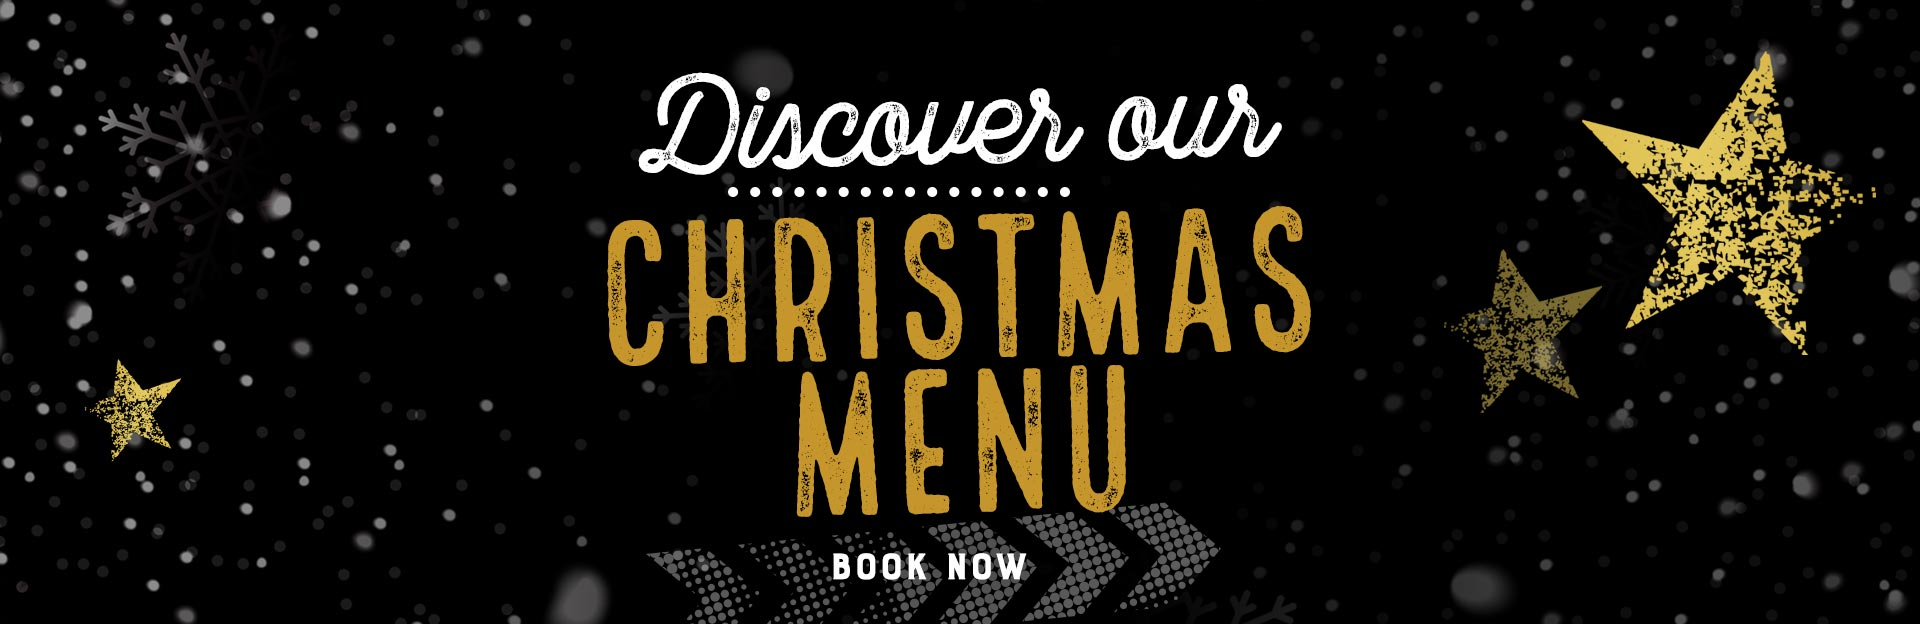 Christmas at The Duke Of Devonshire